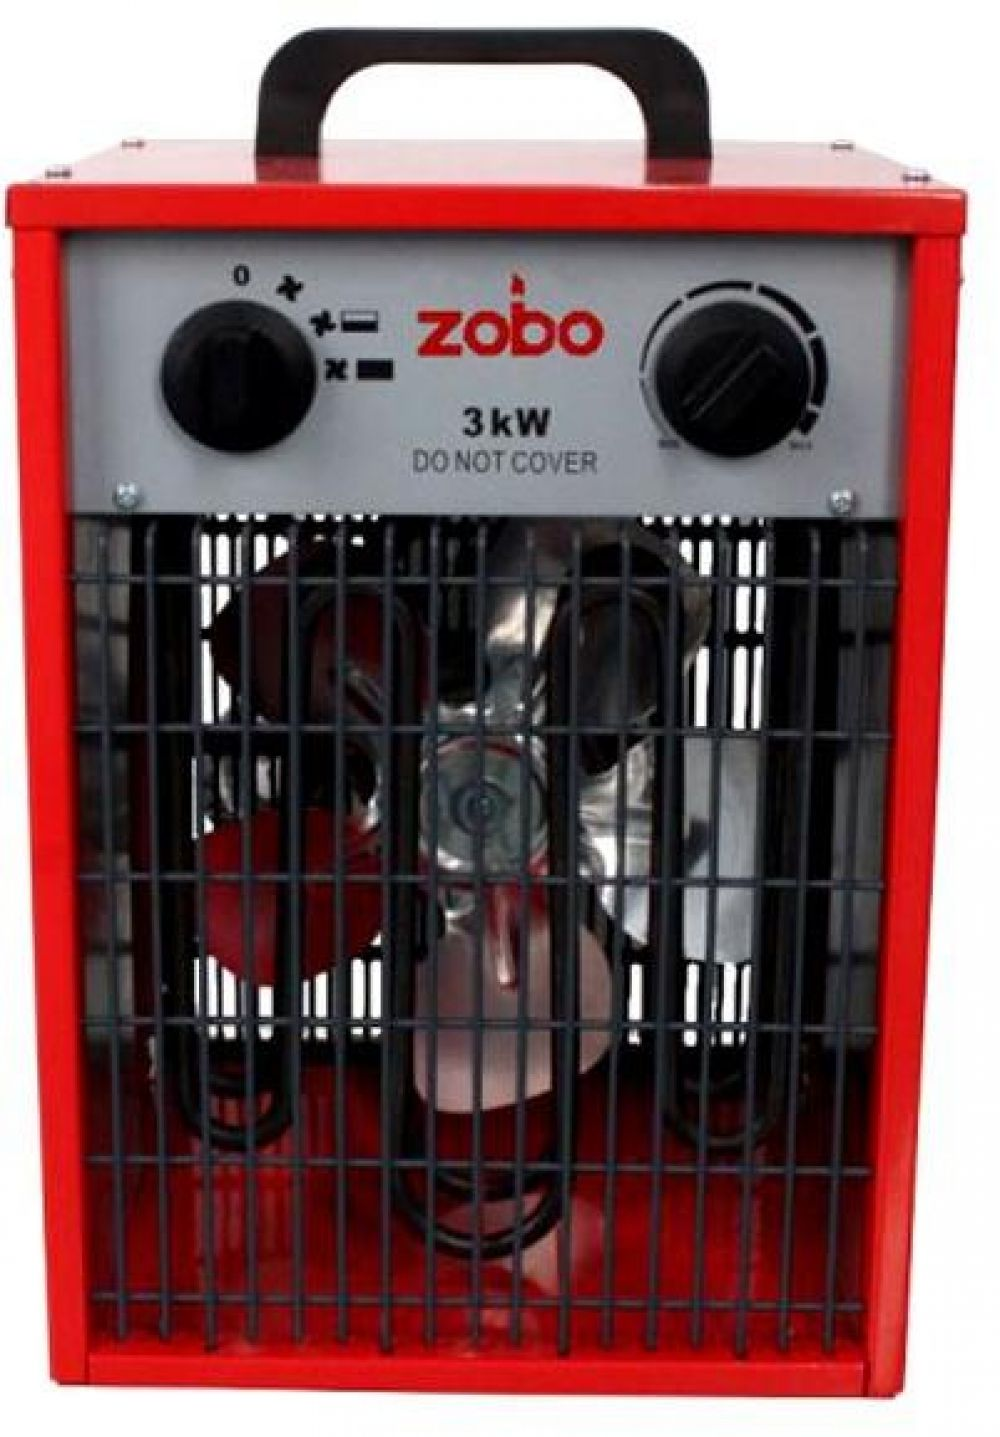 Aeroterma Electrica, Zobo Zb-Ef3, 3 Kw, 30 Mp